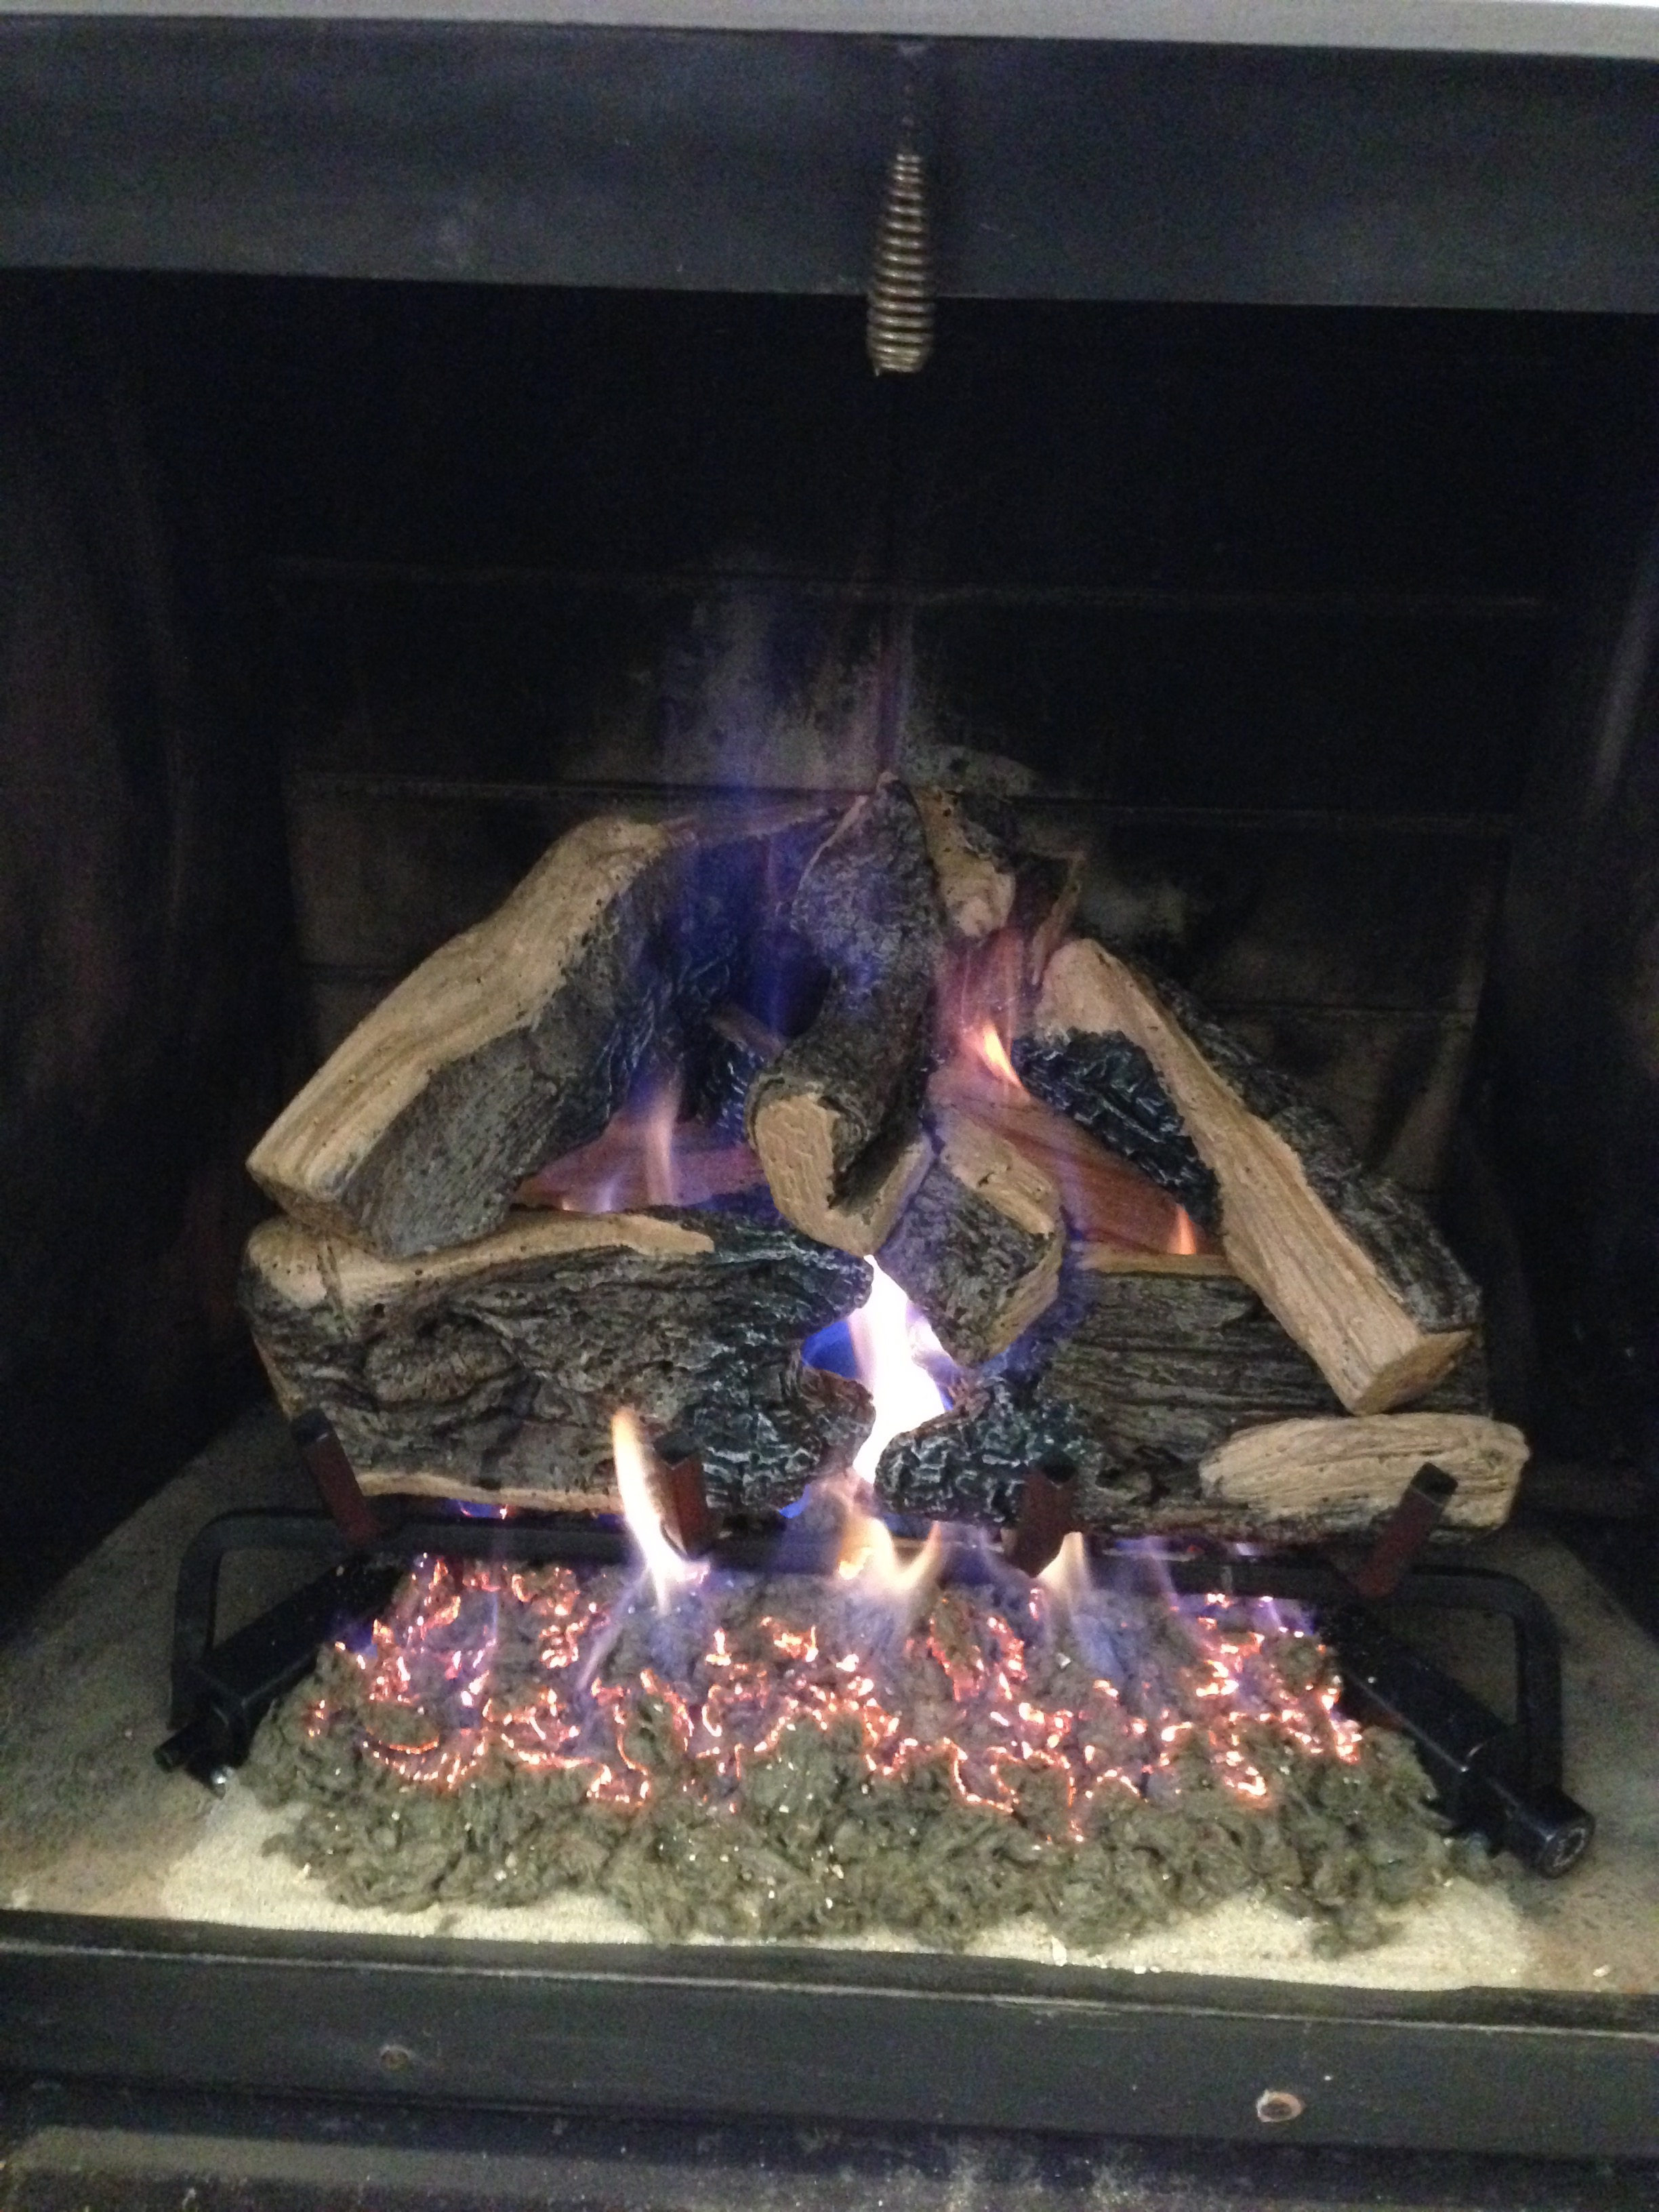 Photograph of burning logs in a gas fireplace.